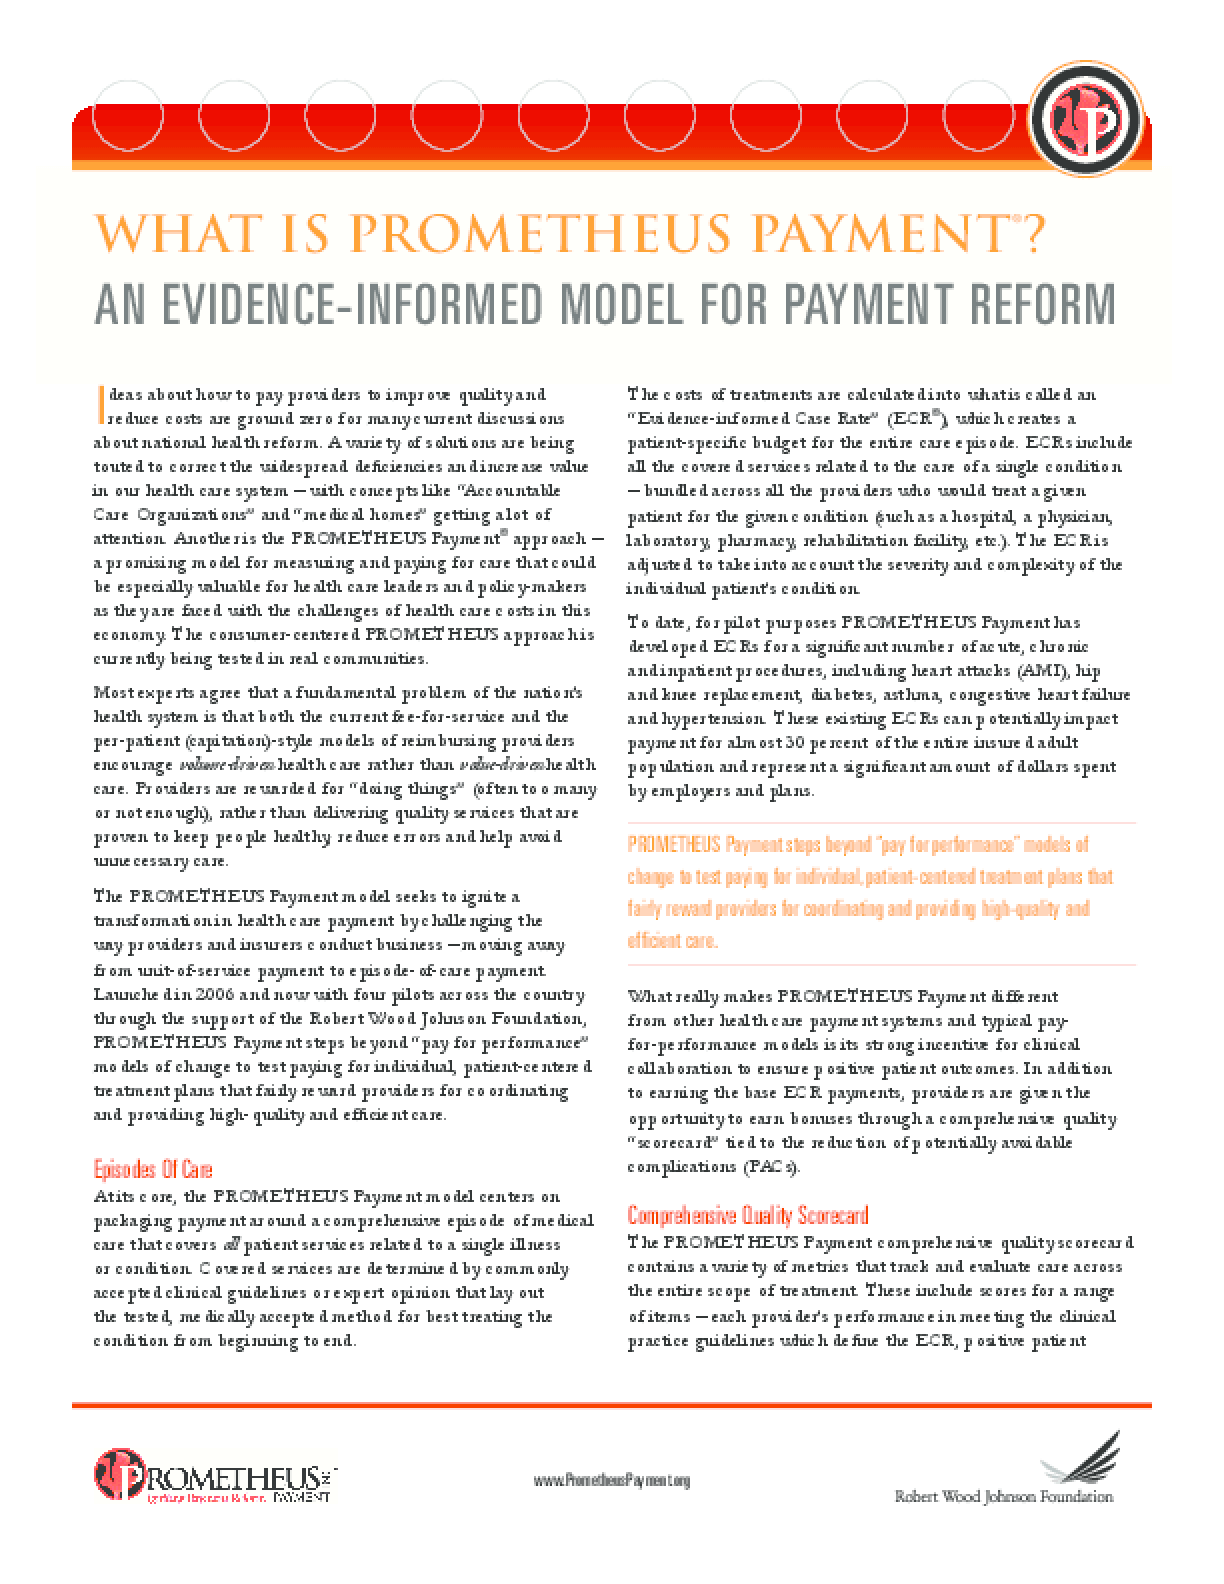 What Is Prometheus Payment? An Evidence-Informed Model for Payment Reform